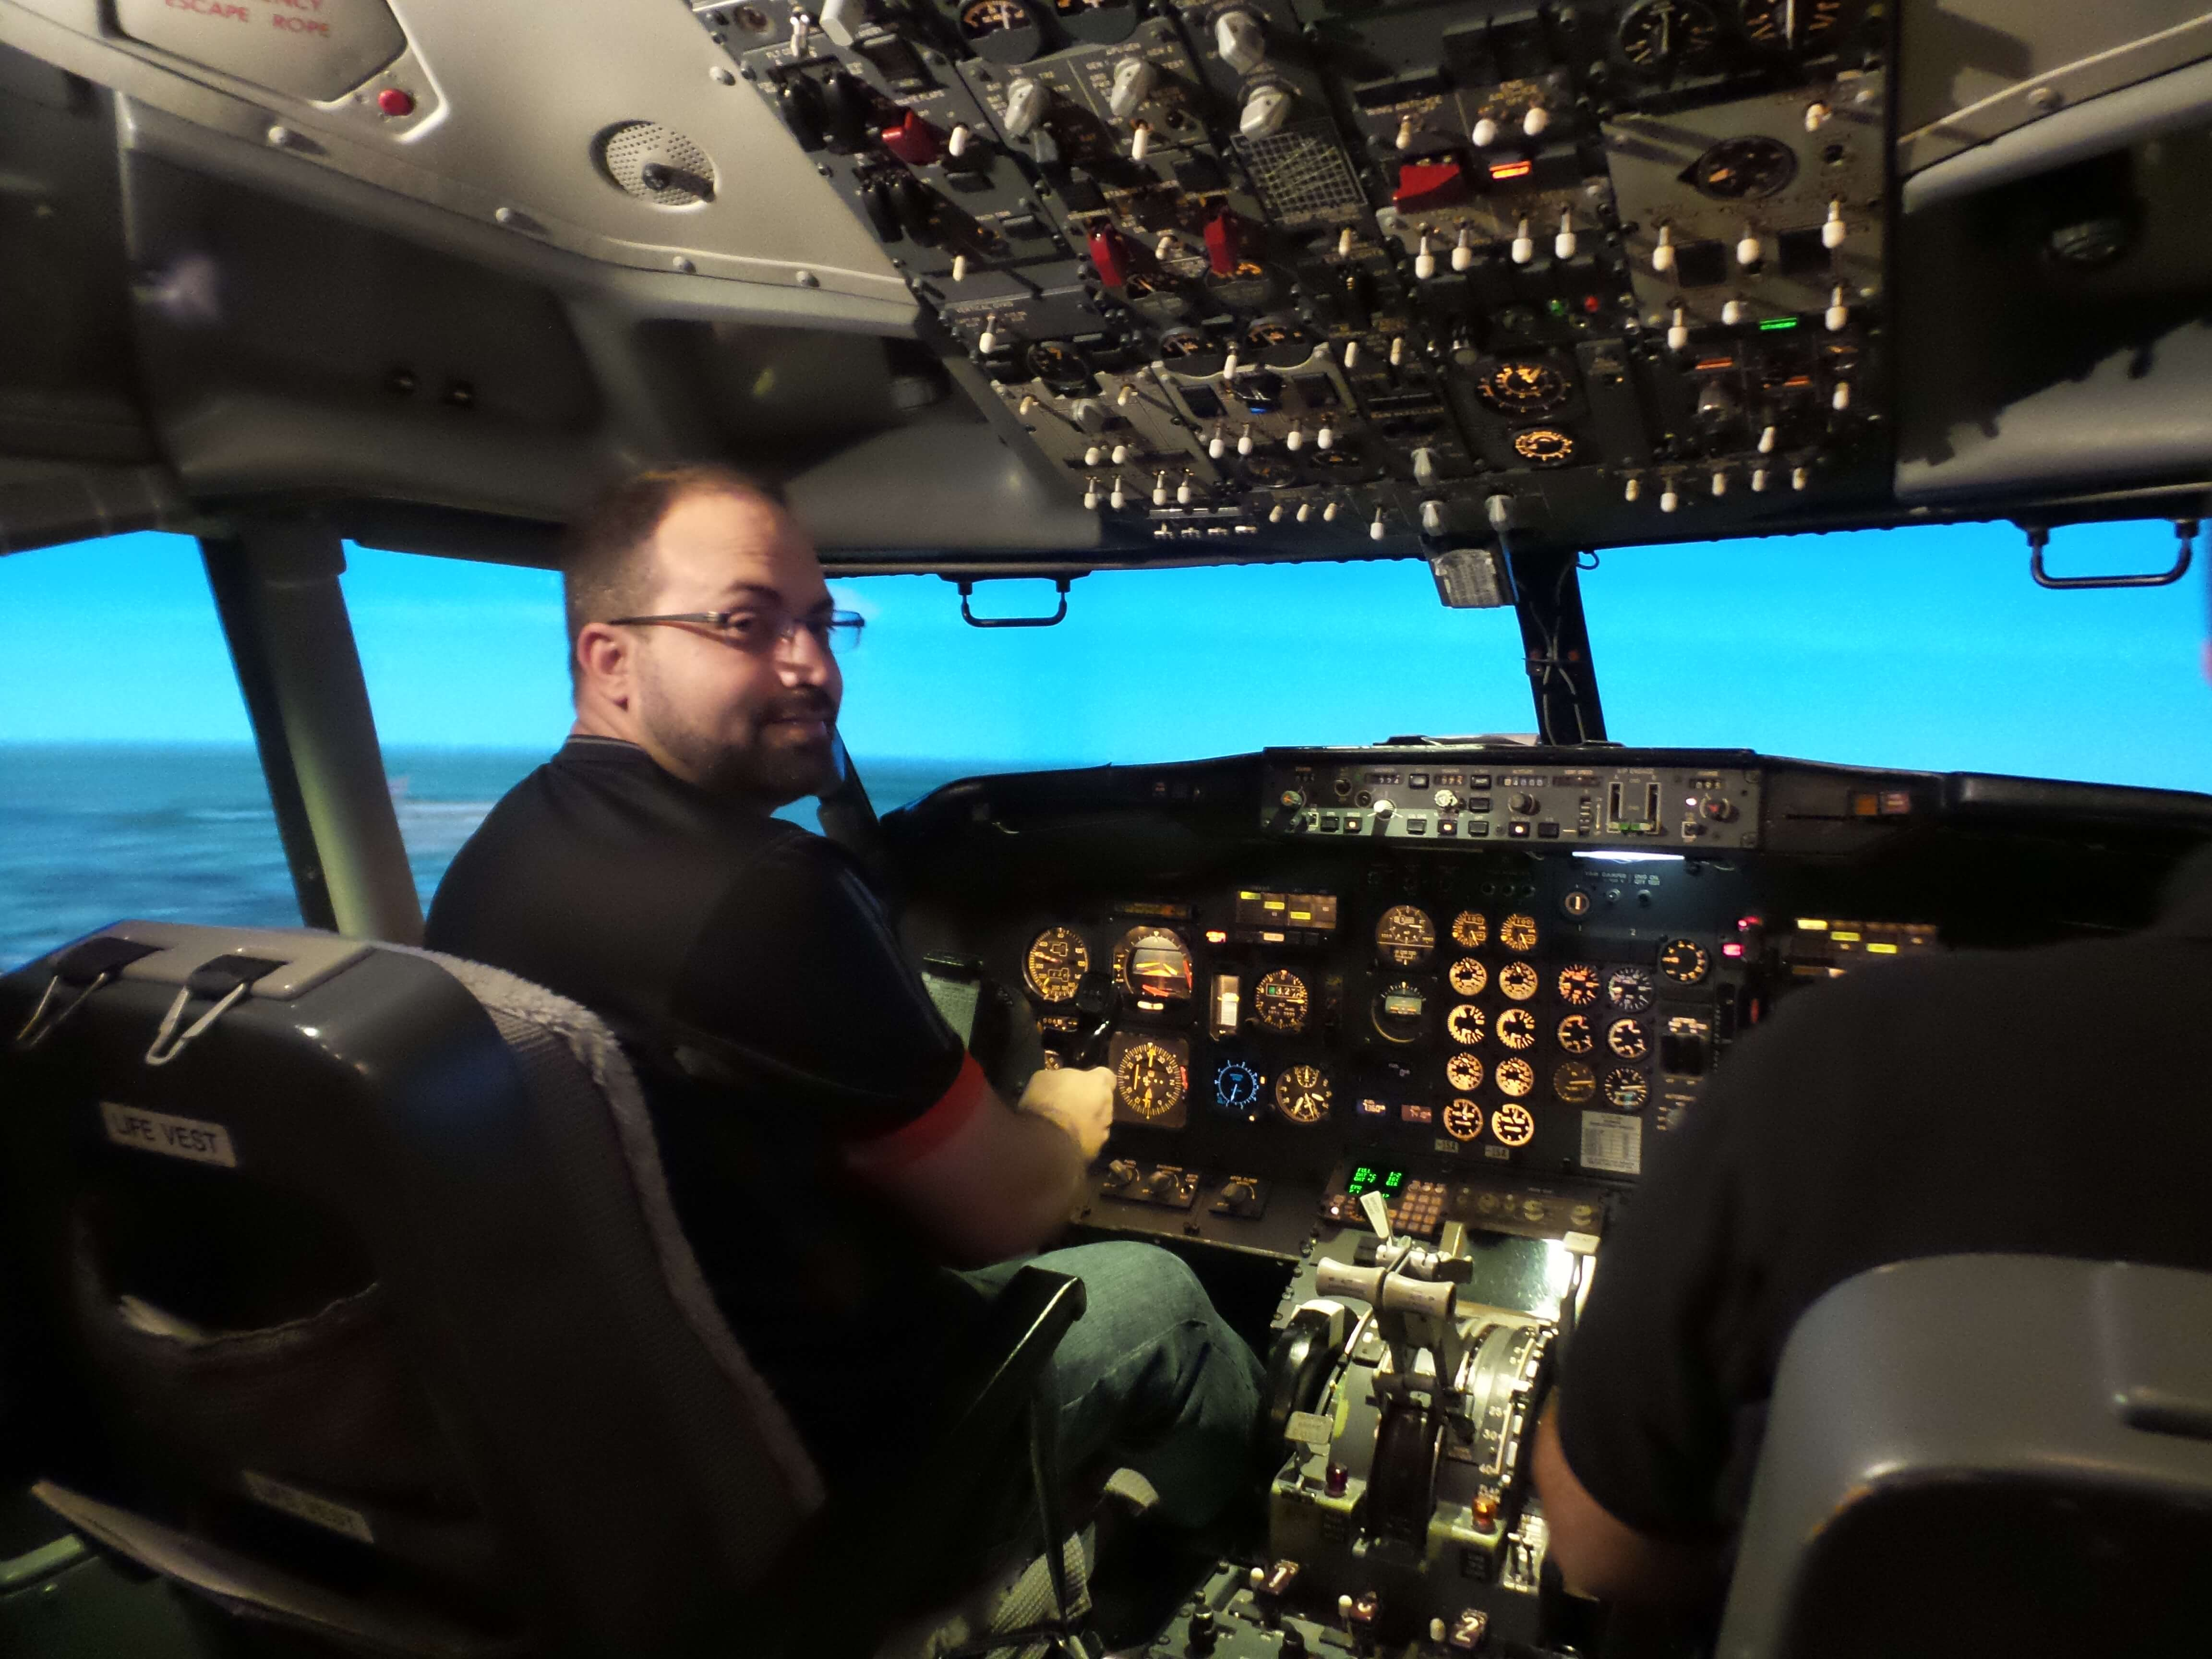 Making a Home Flight Simulator in 1600 hours